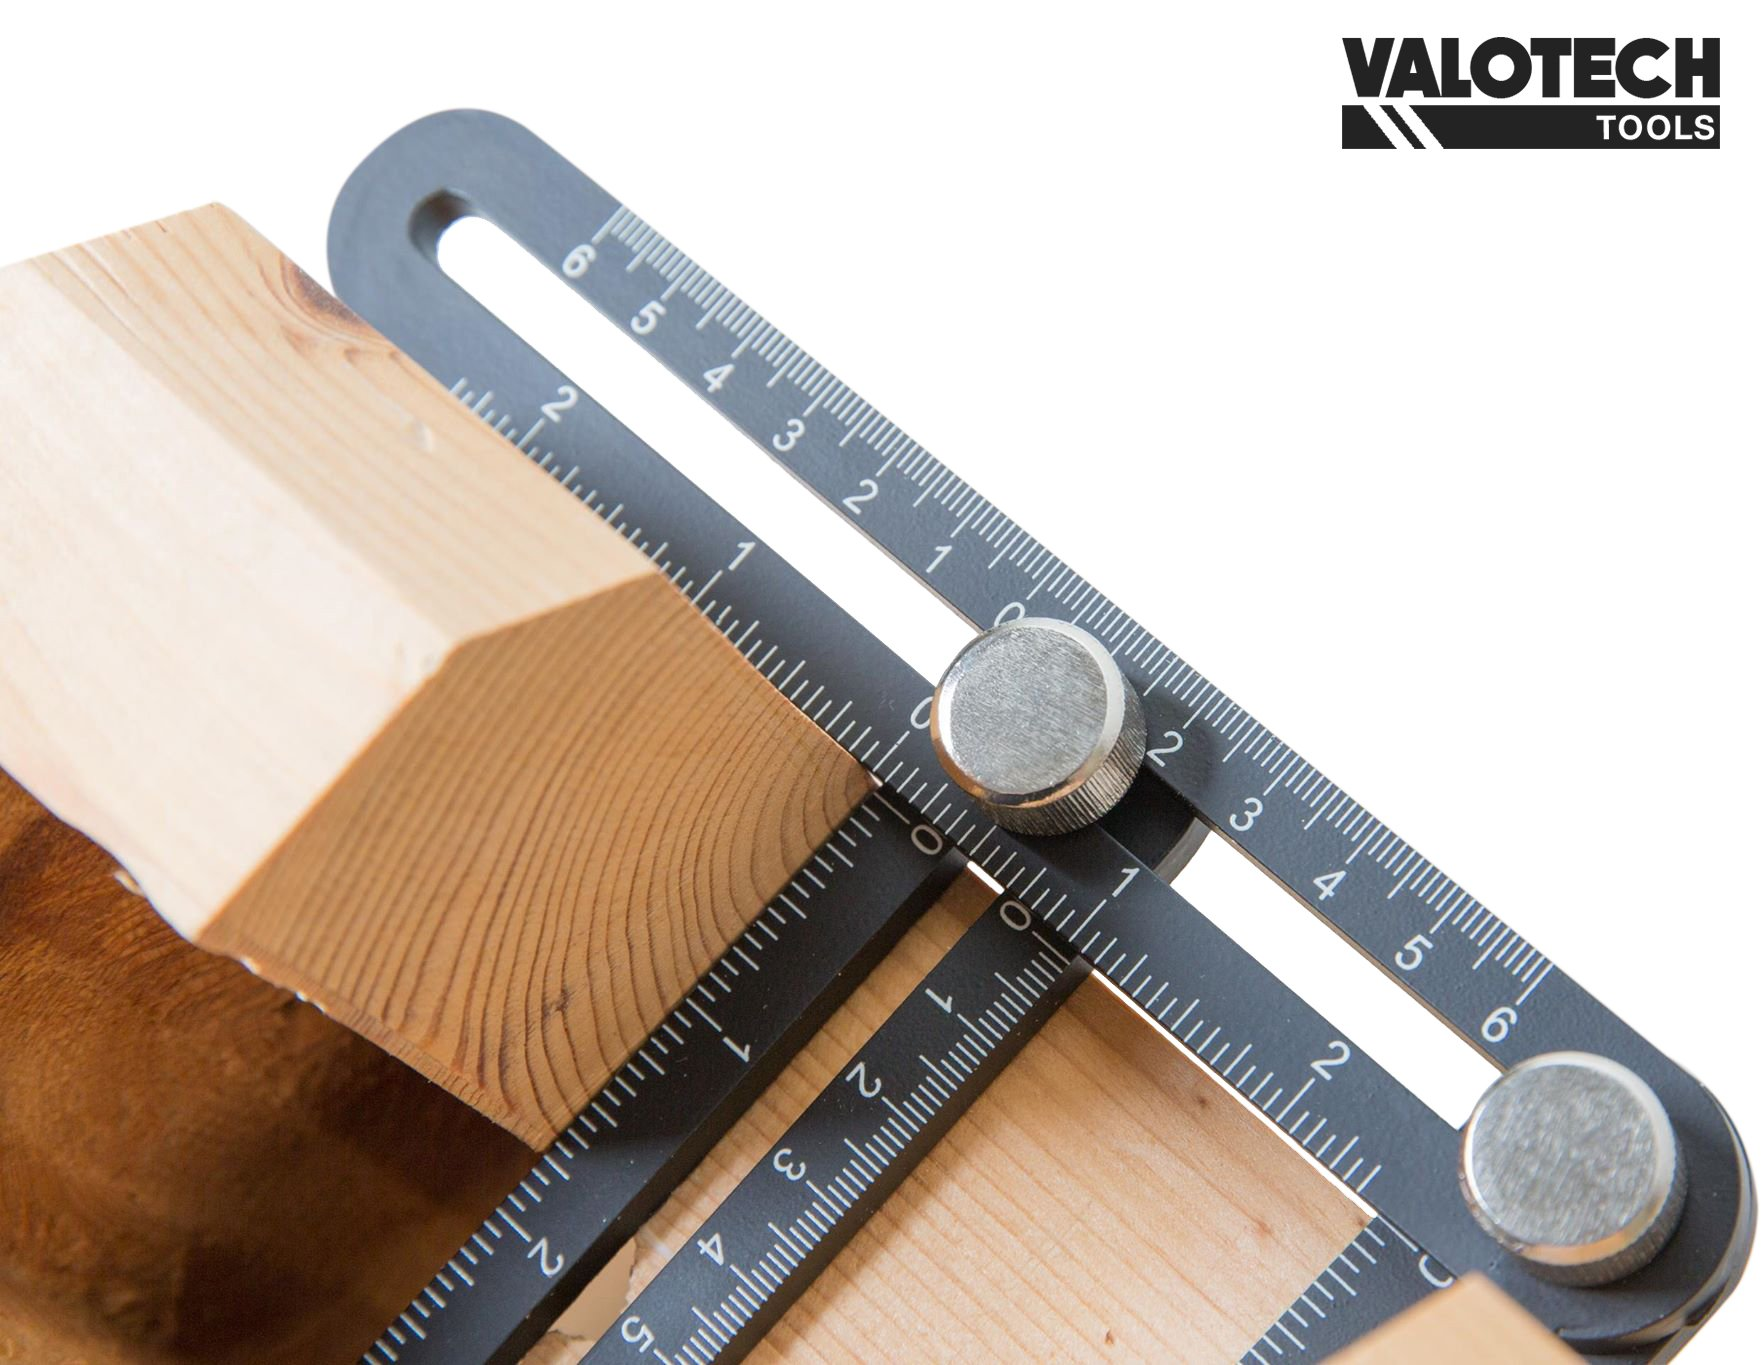 Full Metal angleizer Multi-Angle Measuring Ruler: Ultimate Template Tool for Measuring Angles – Precise Upgraded Aluminum Template Tool - for DIY, Roofers, Carpenters, Handymen -Includes Carry Pouch by Valotech (Image #8)